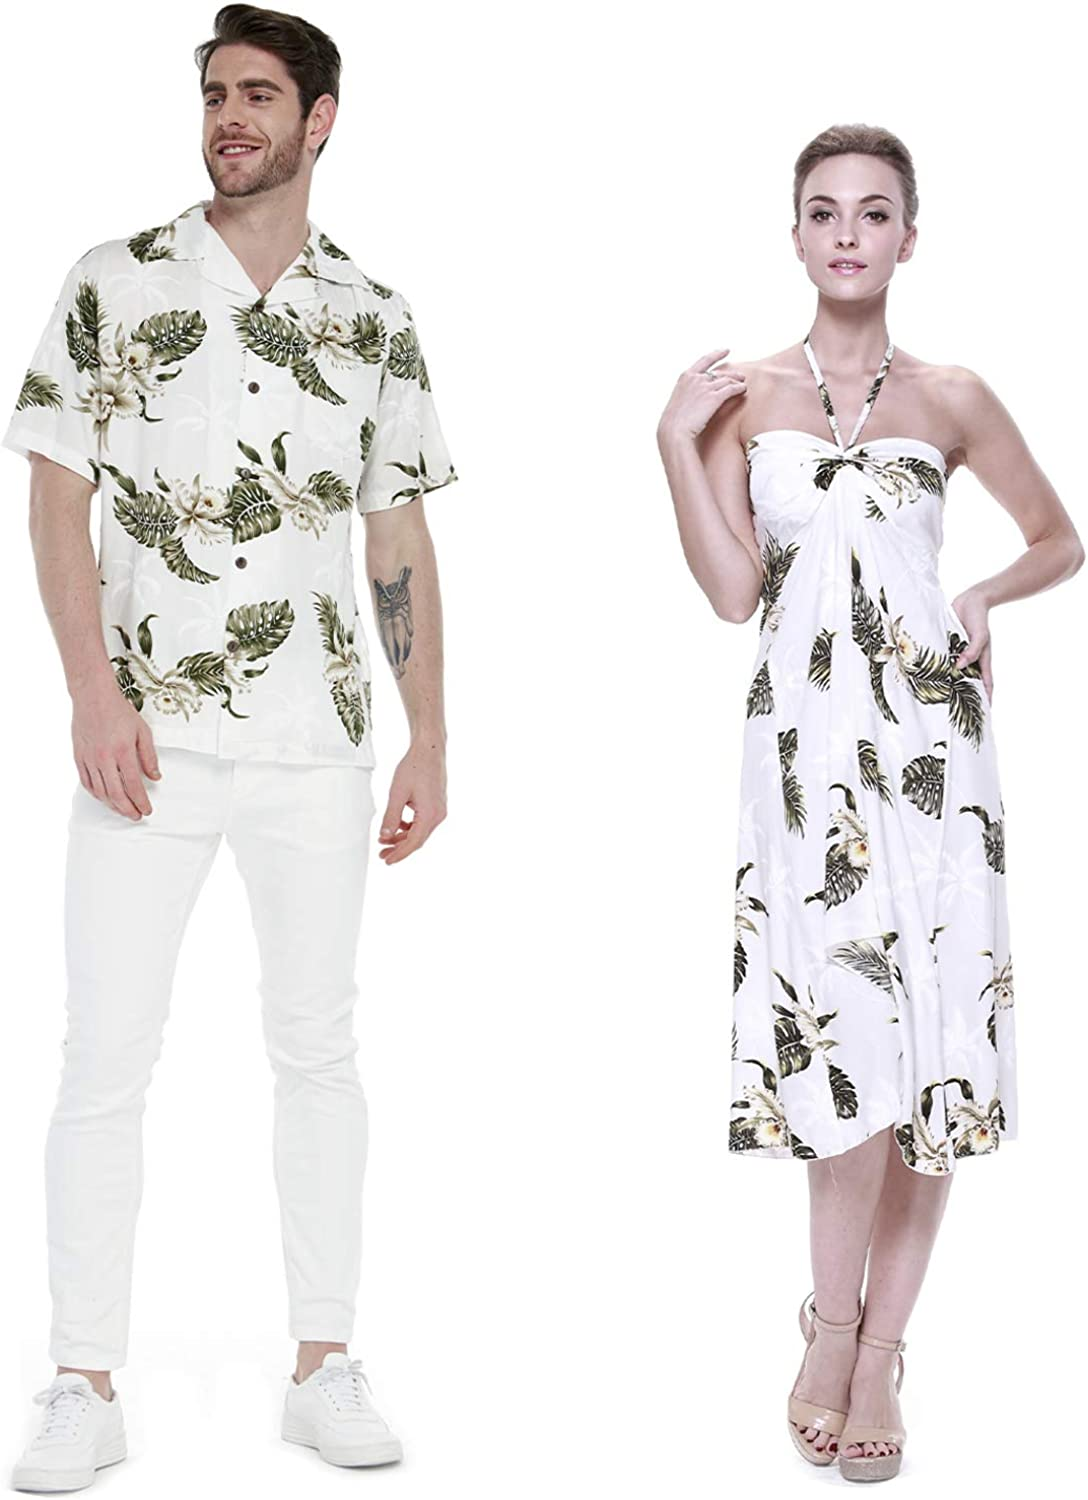 Couple Matching Hawaiian Luau Party Outfit Set Shirt Dress In Palm Green At Amazon Men S Clothing Store